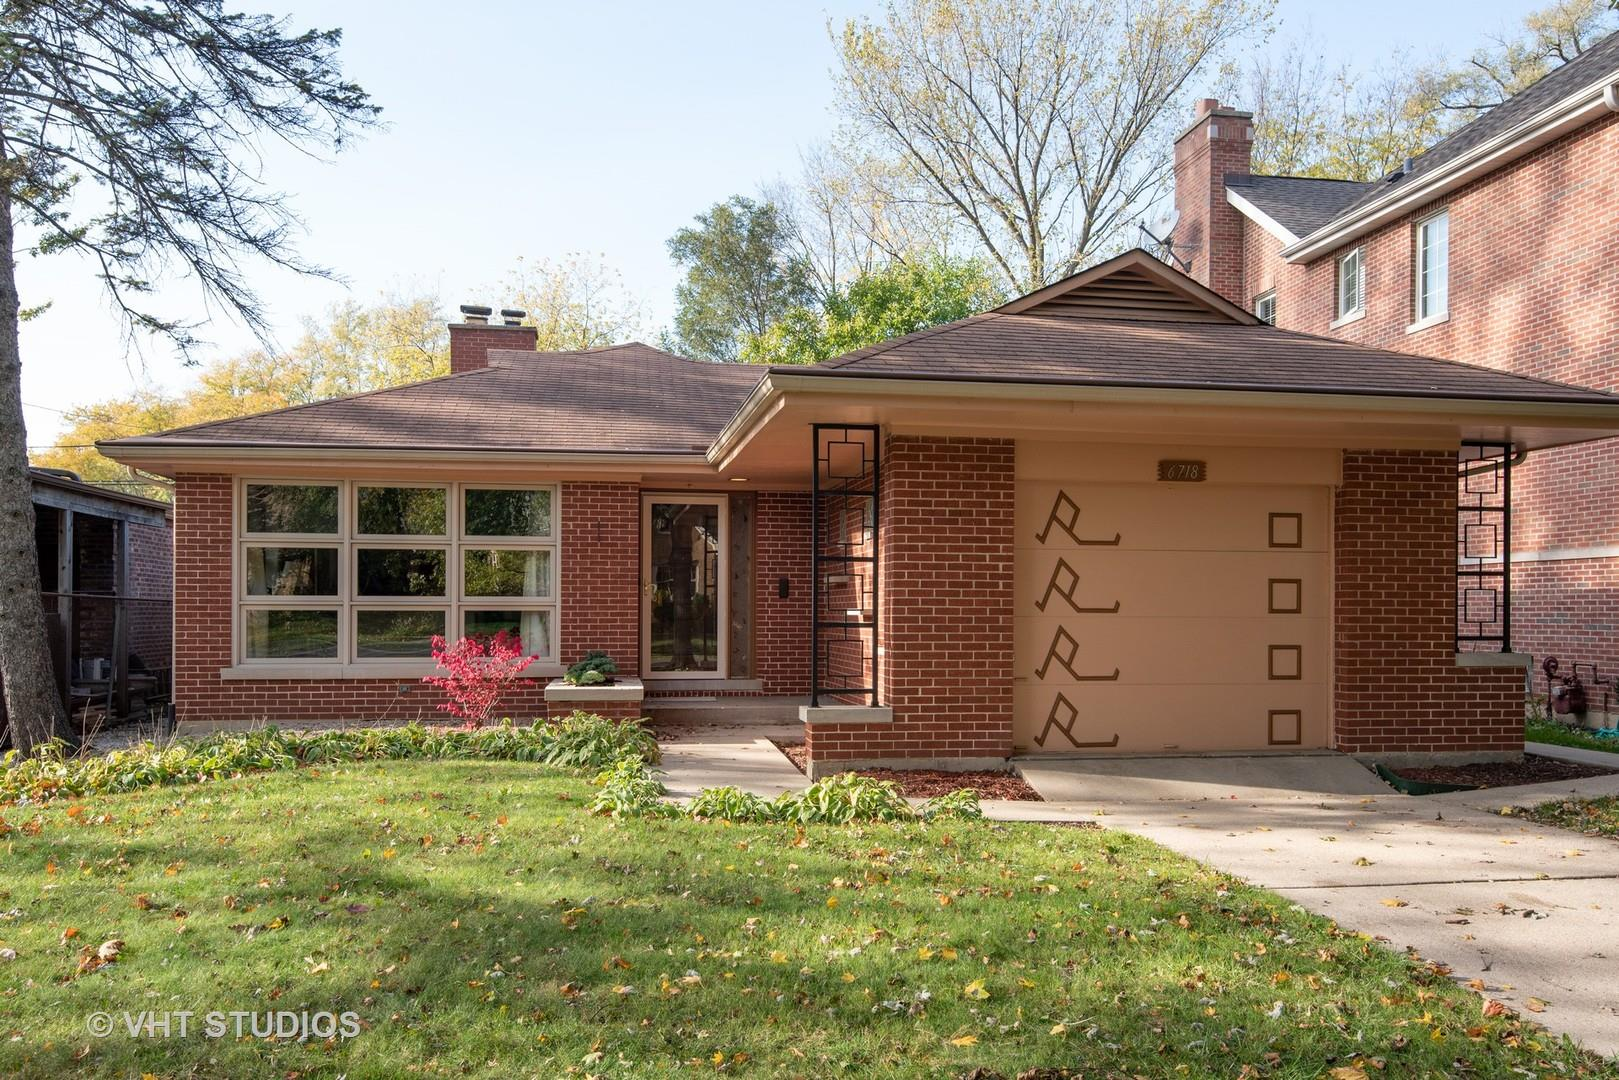 6718 N Loron Avenue, Chicago, IL 60646 - #: 10904945